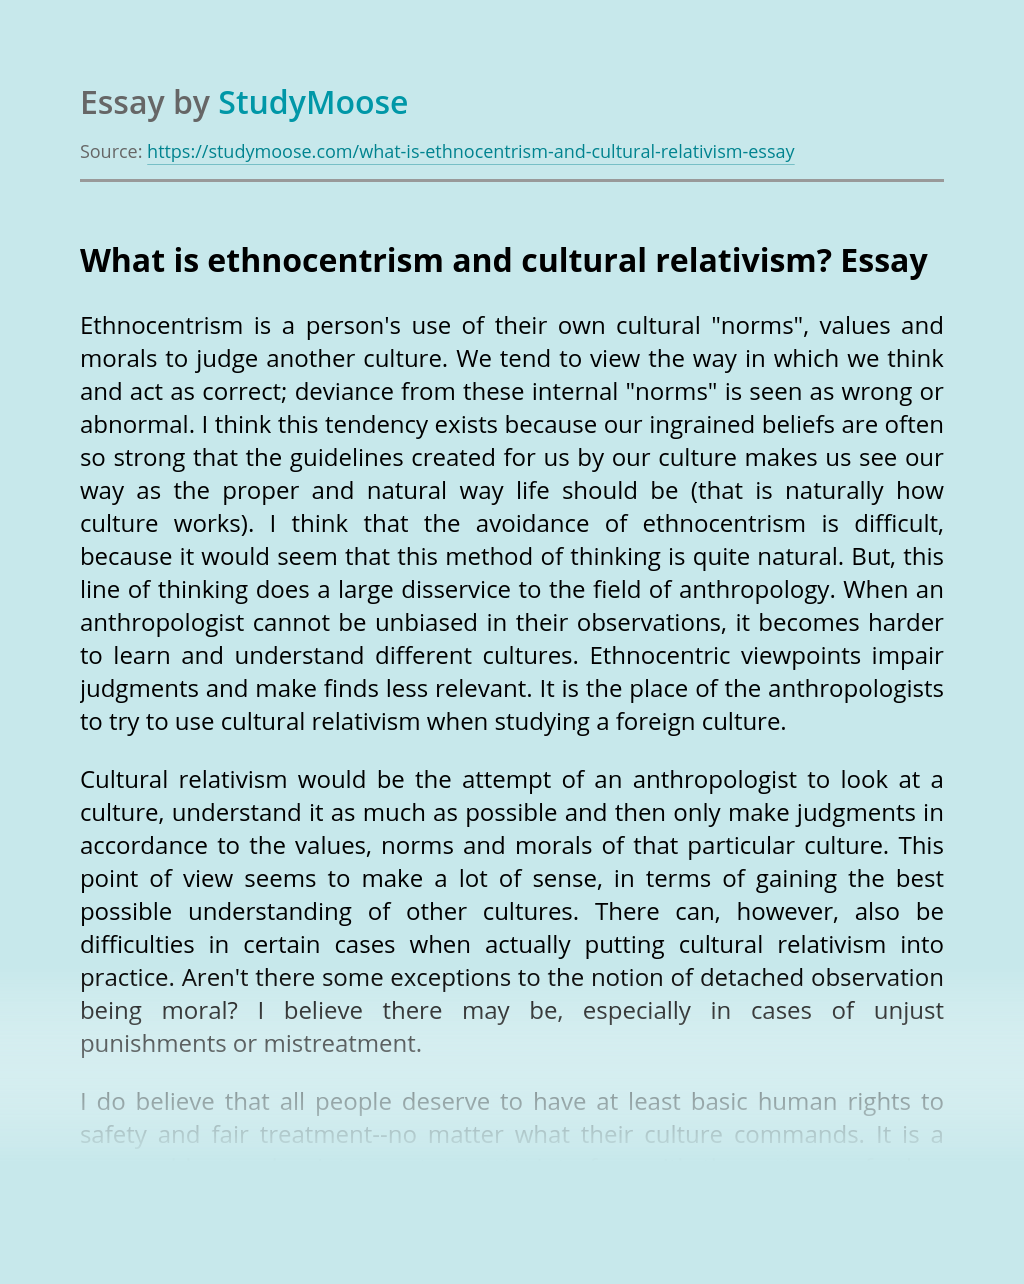 What is ethnocentrism and cultural relativism?